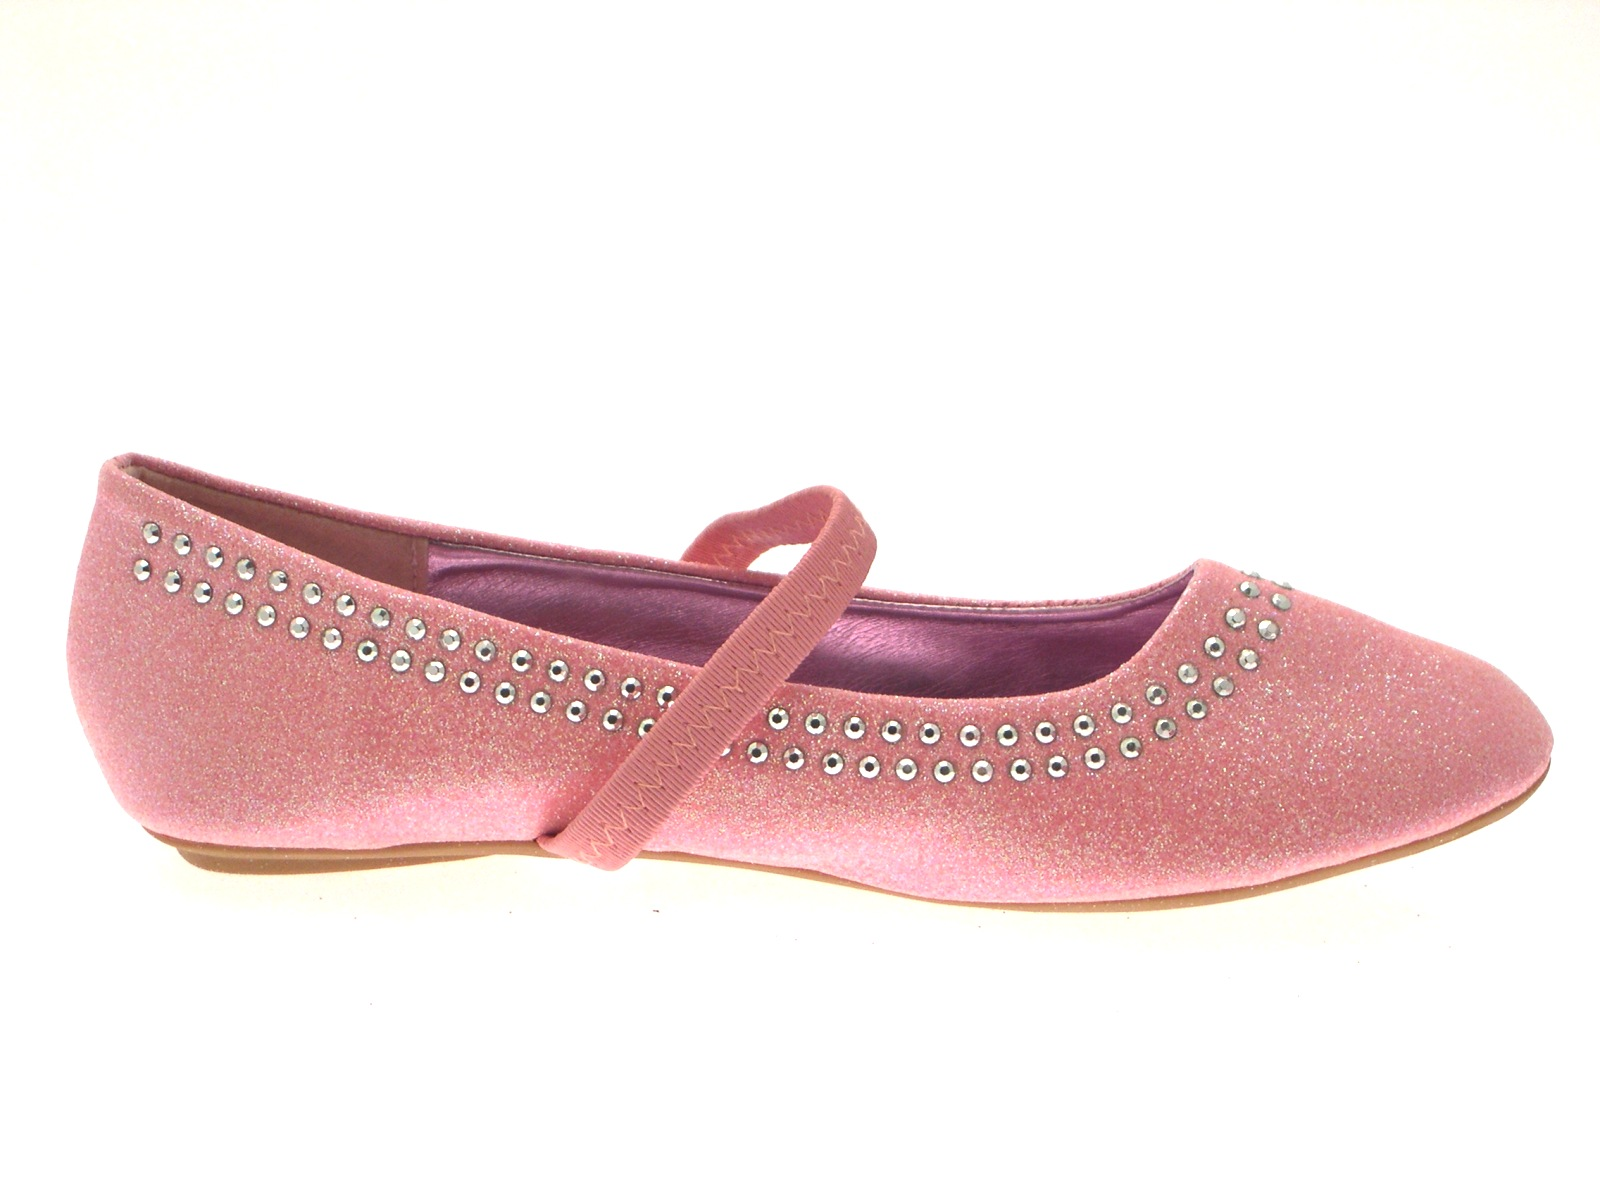 Free shipping BOTH ways on girls flat shoes, from our vast selection of styles. Fast delivery, and 24/7/ real-person service with a smile. Click or call